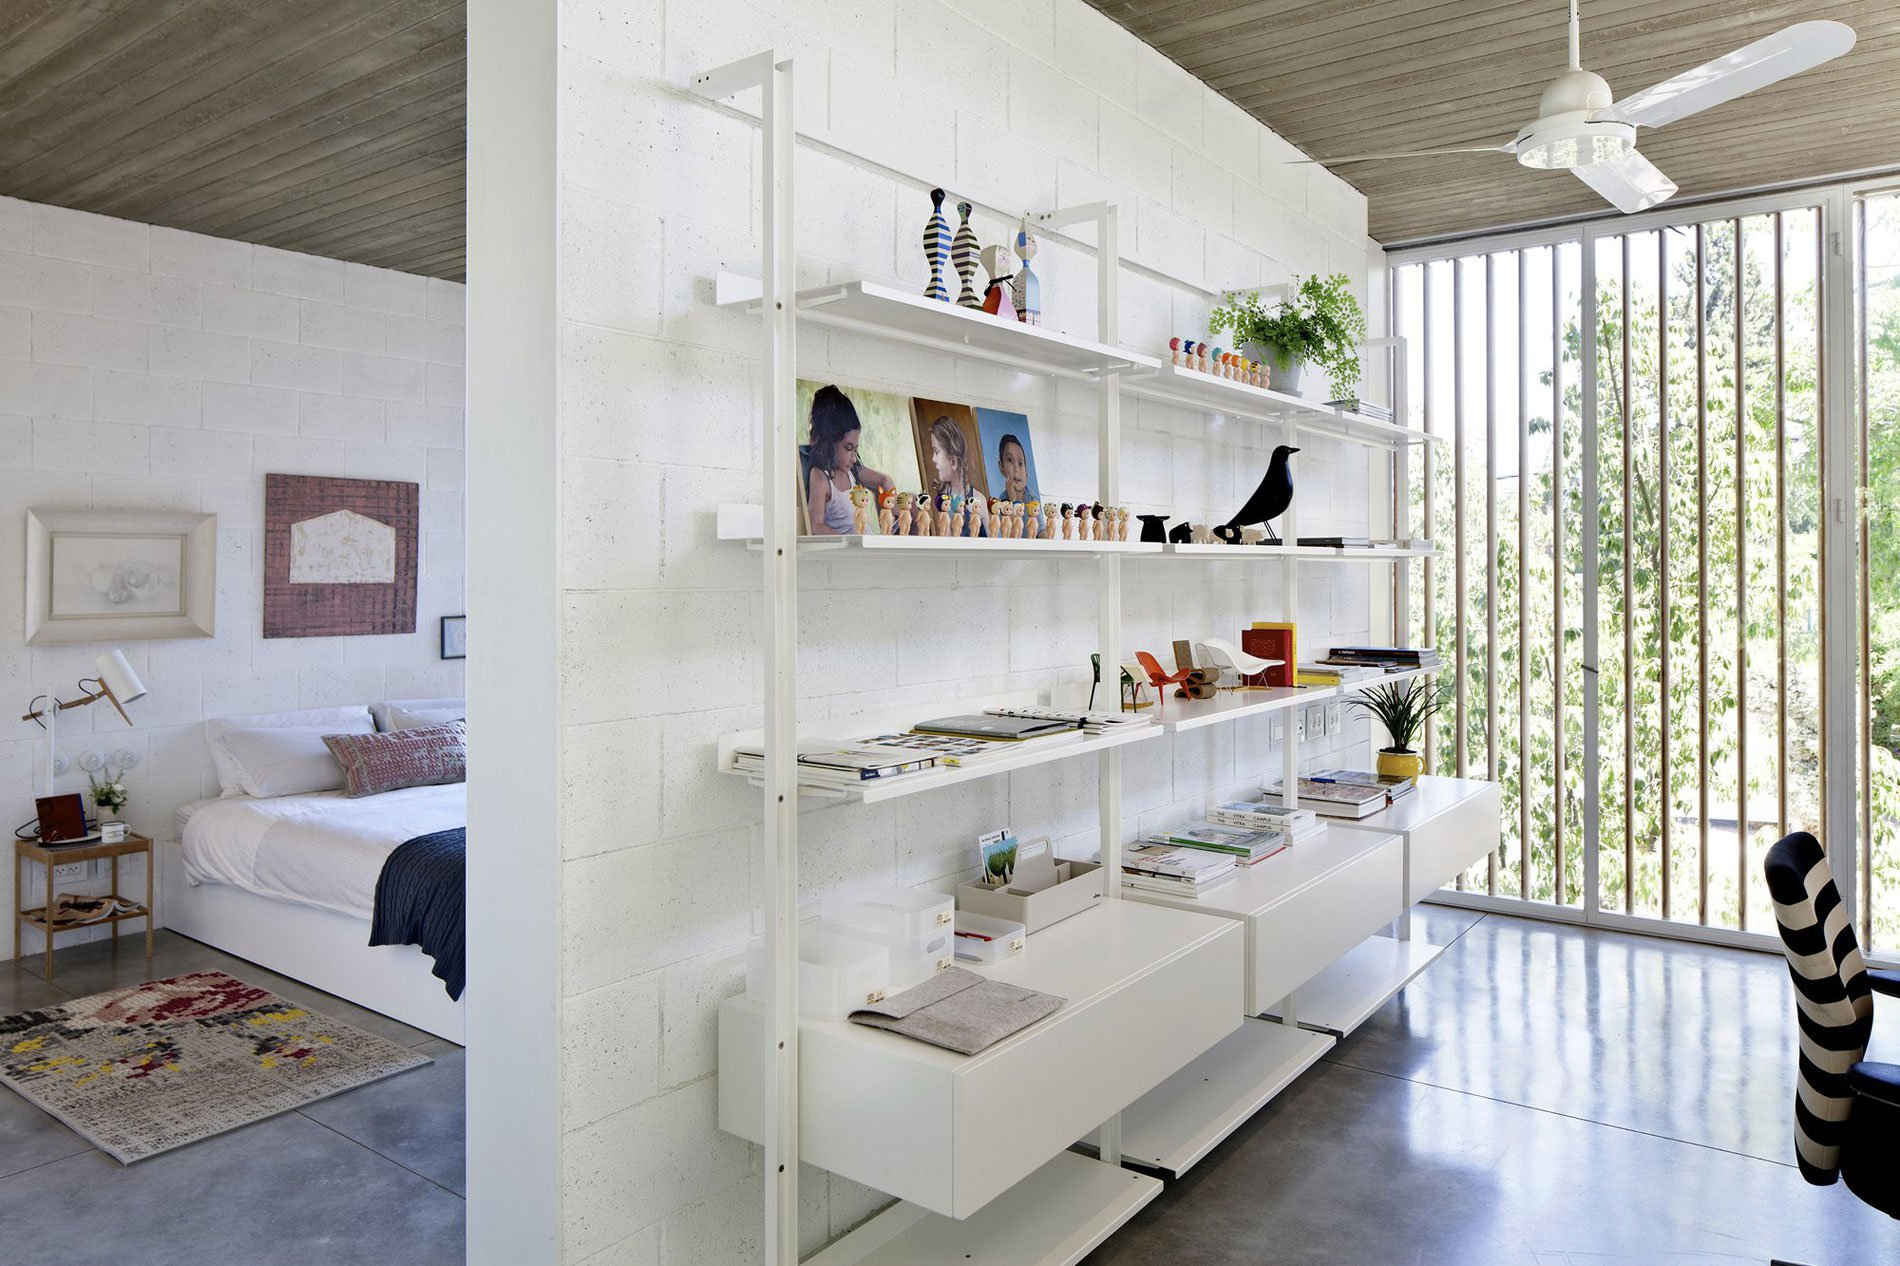 A-House-for-an-Architect-18